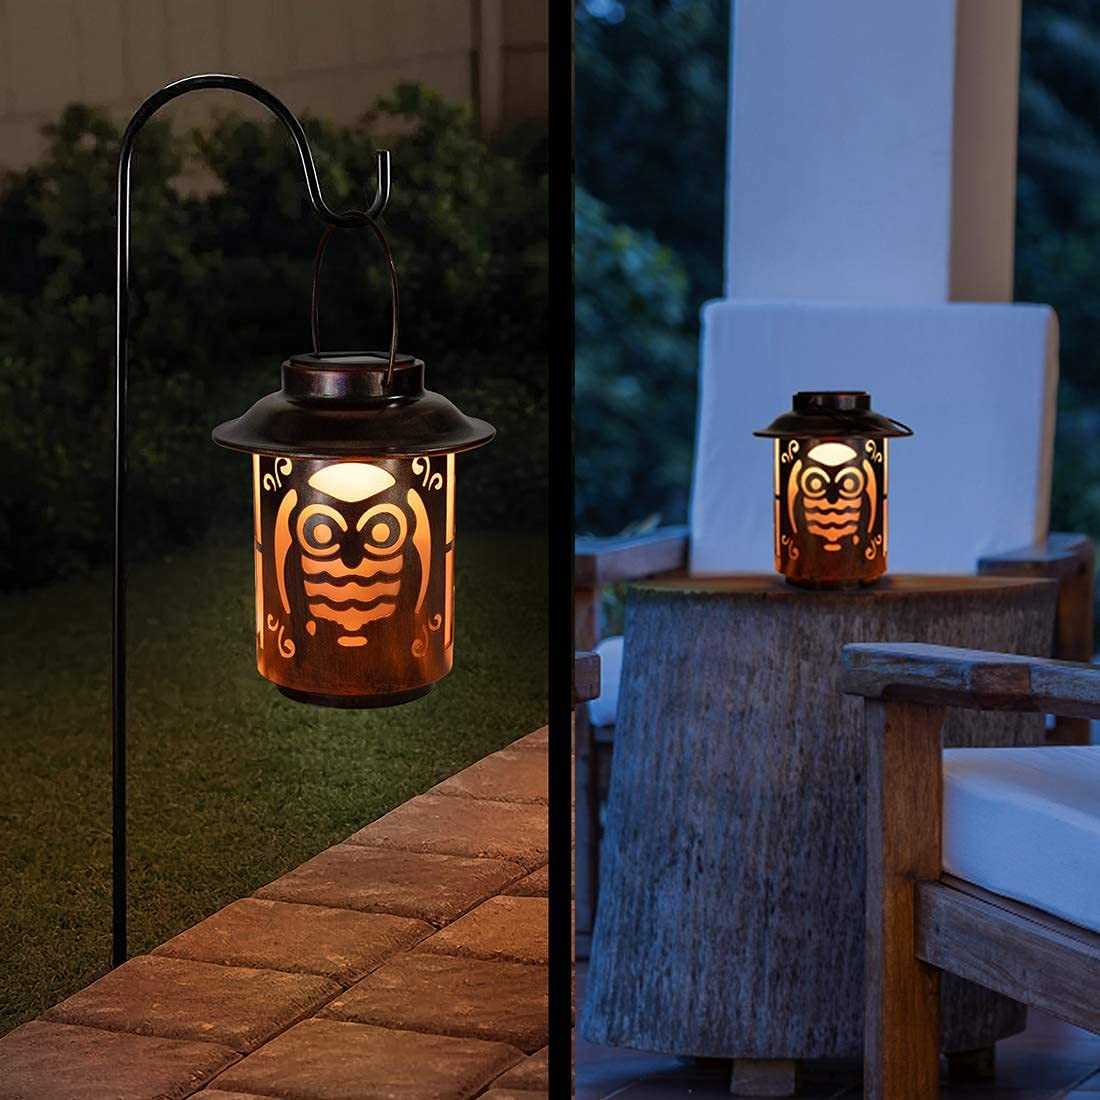 Outdoor Solar Lanterns Lights Hanging - Waterproof Cute Owl Vintage Metal Lamp ,Warm Light Decor for Outside Patio Garden,Lawn,Porch, Pathway,Courtyard, Table and Party Decorative Gifts